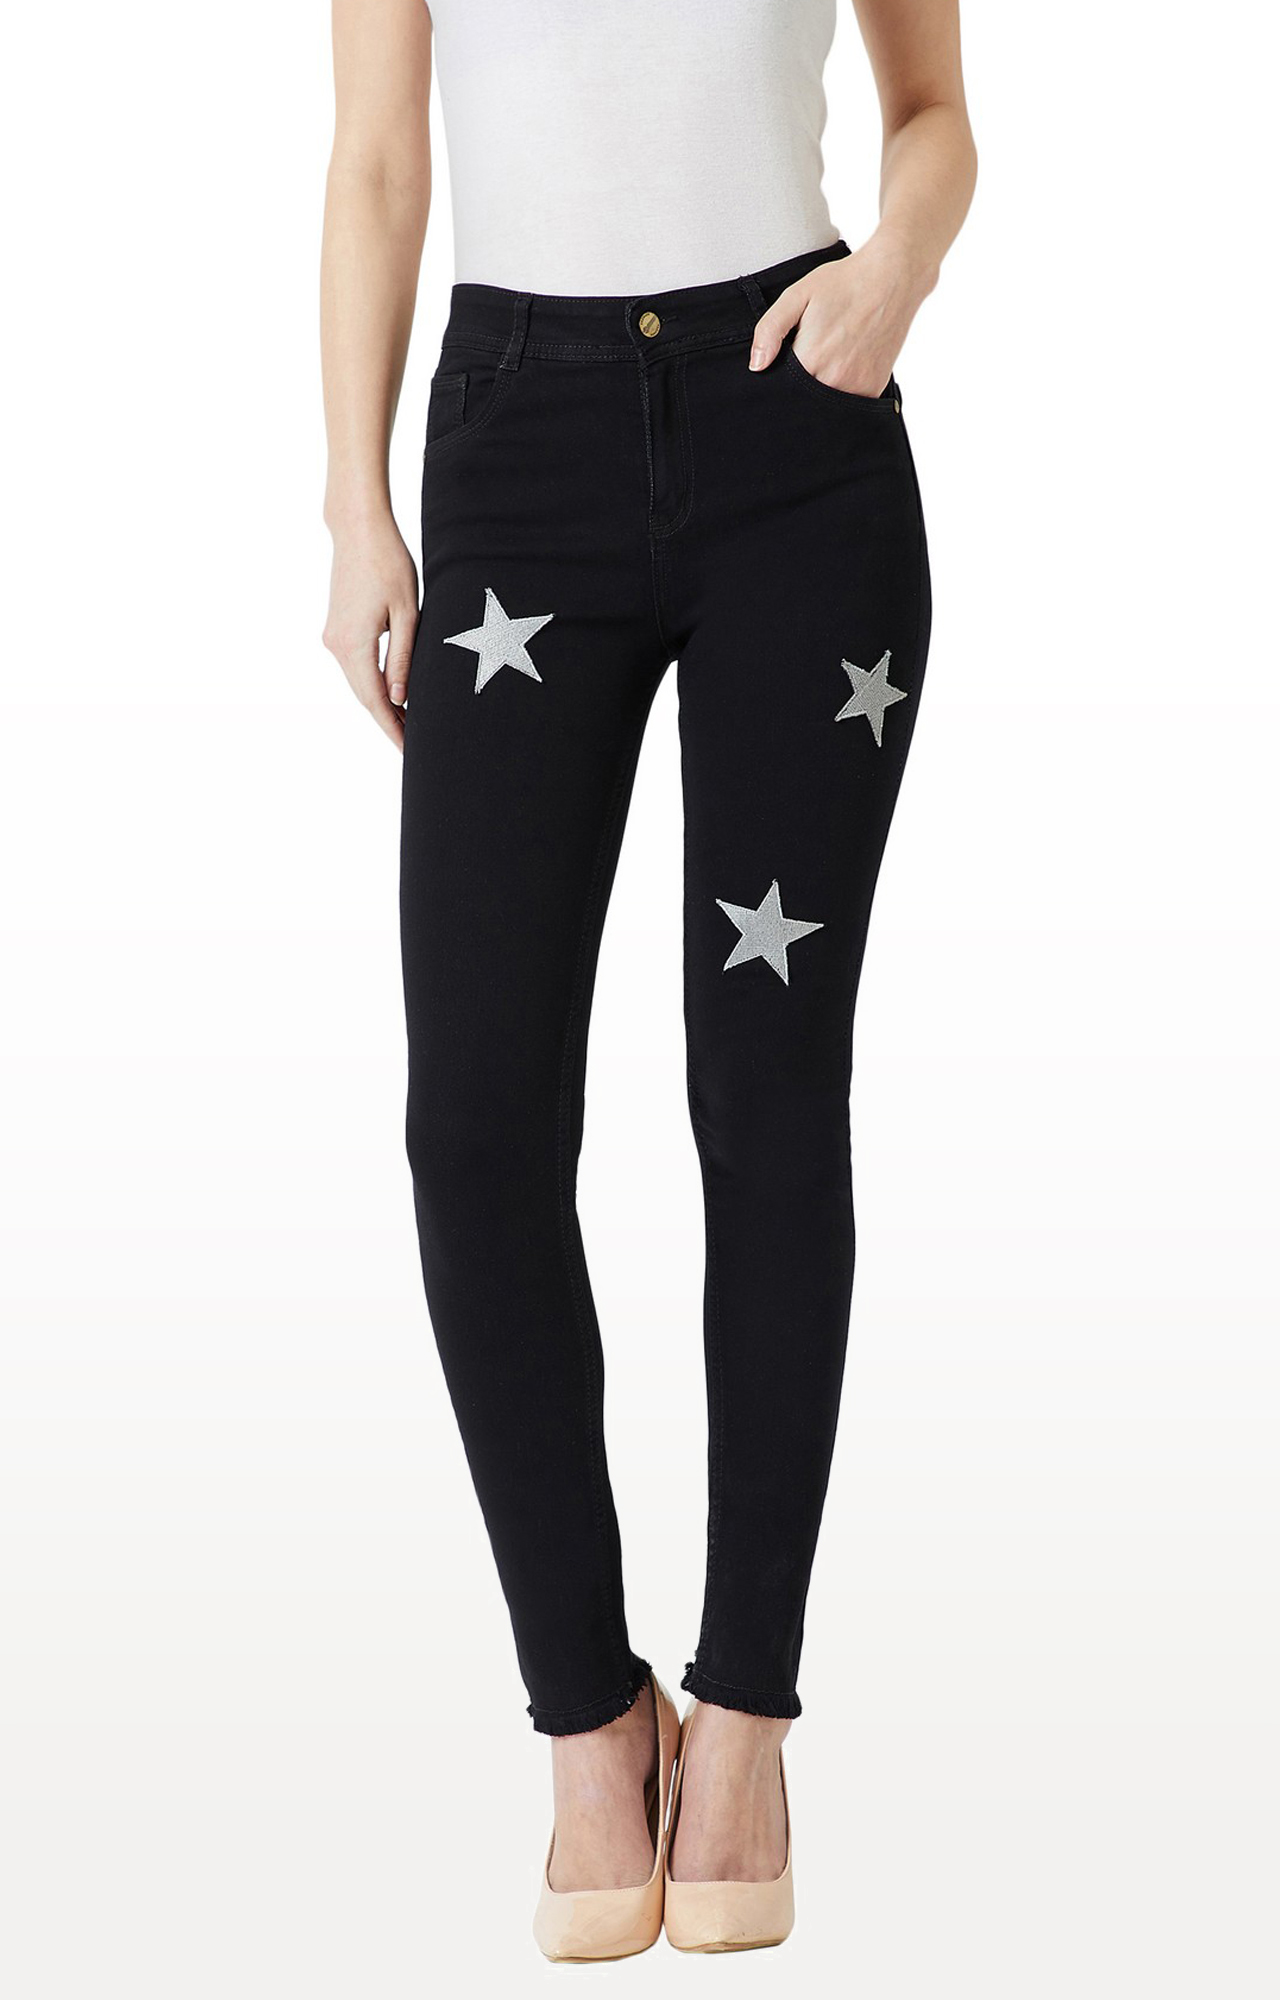 MISS CHASE | Black Solid Tapered Jeans